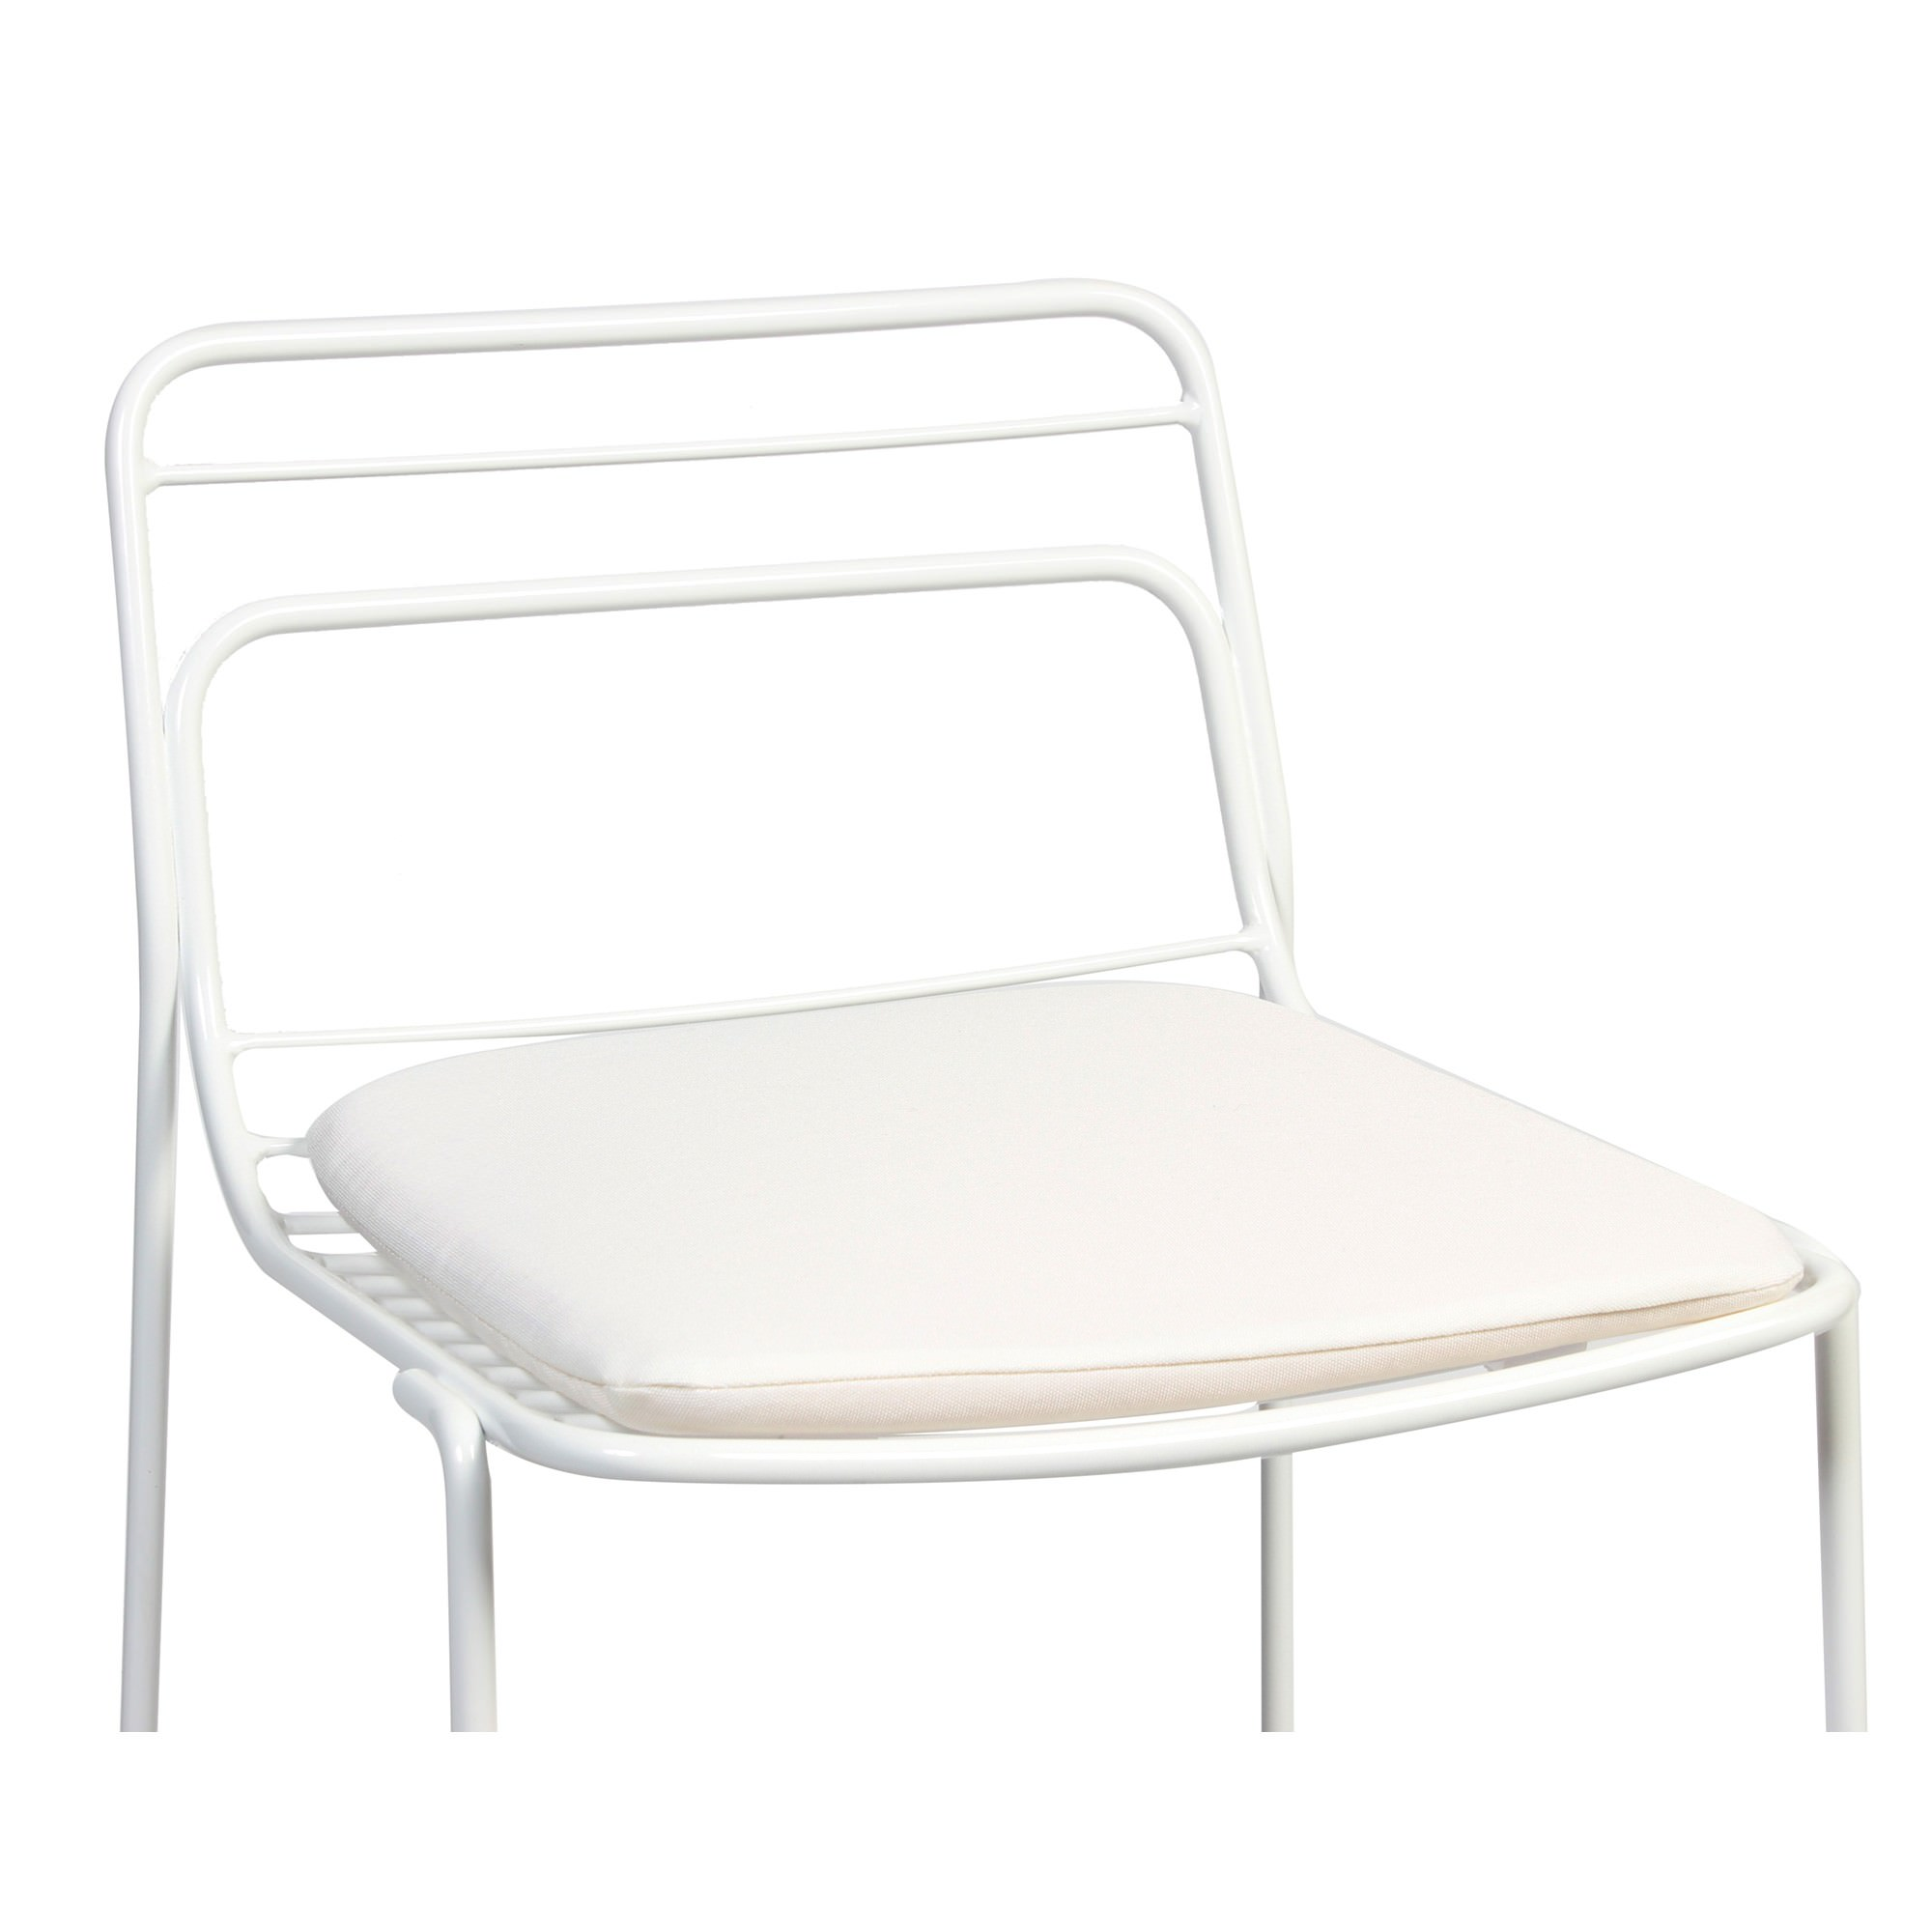 Fabric Seat Pad for Cage Chair, White